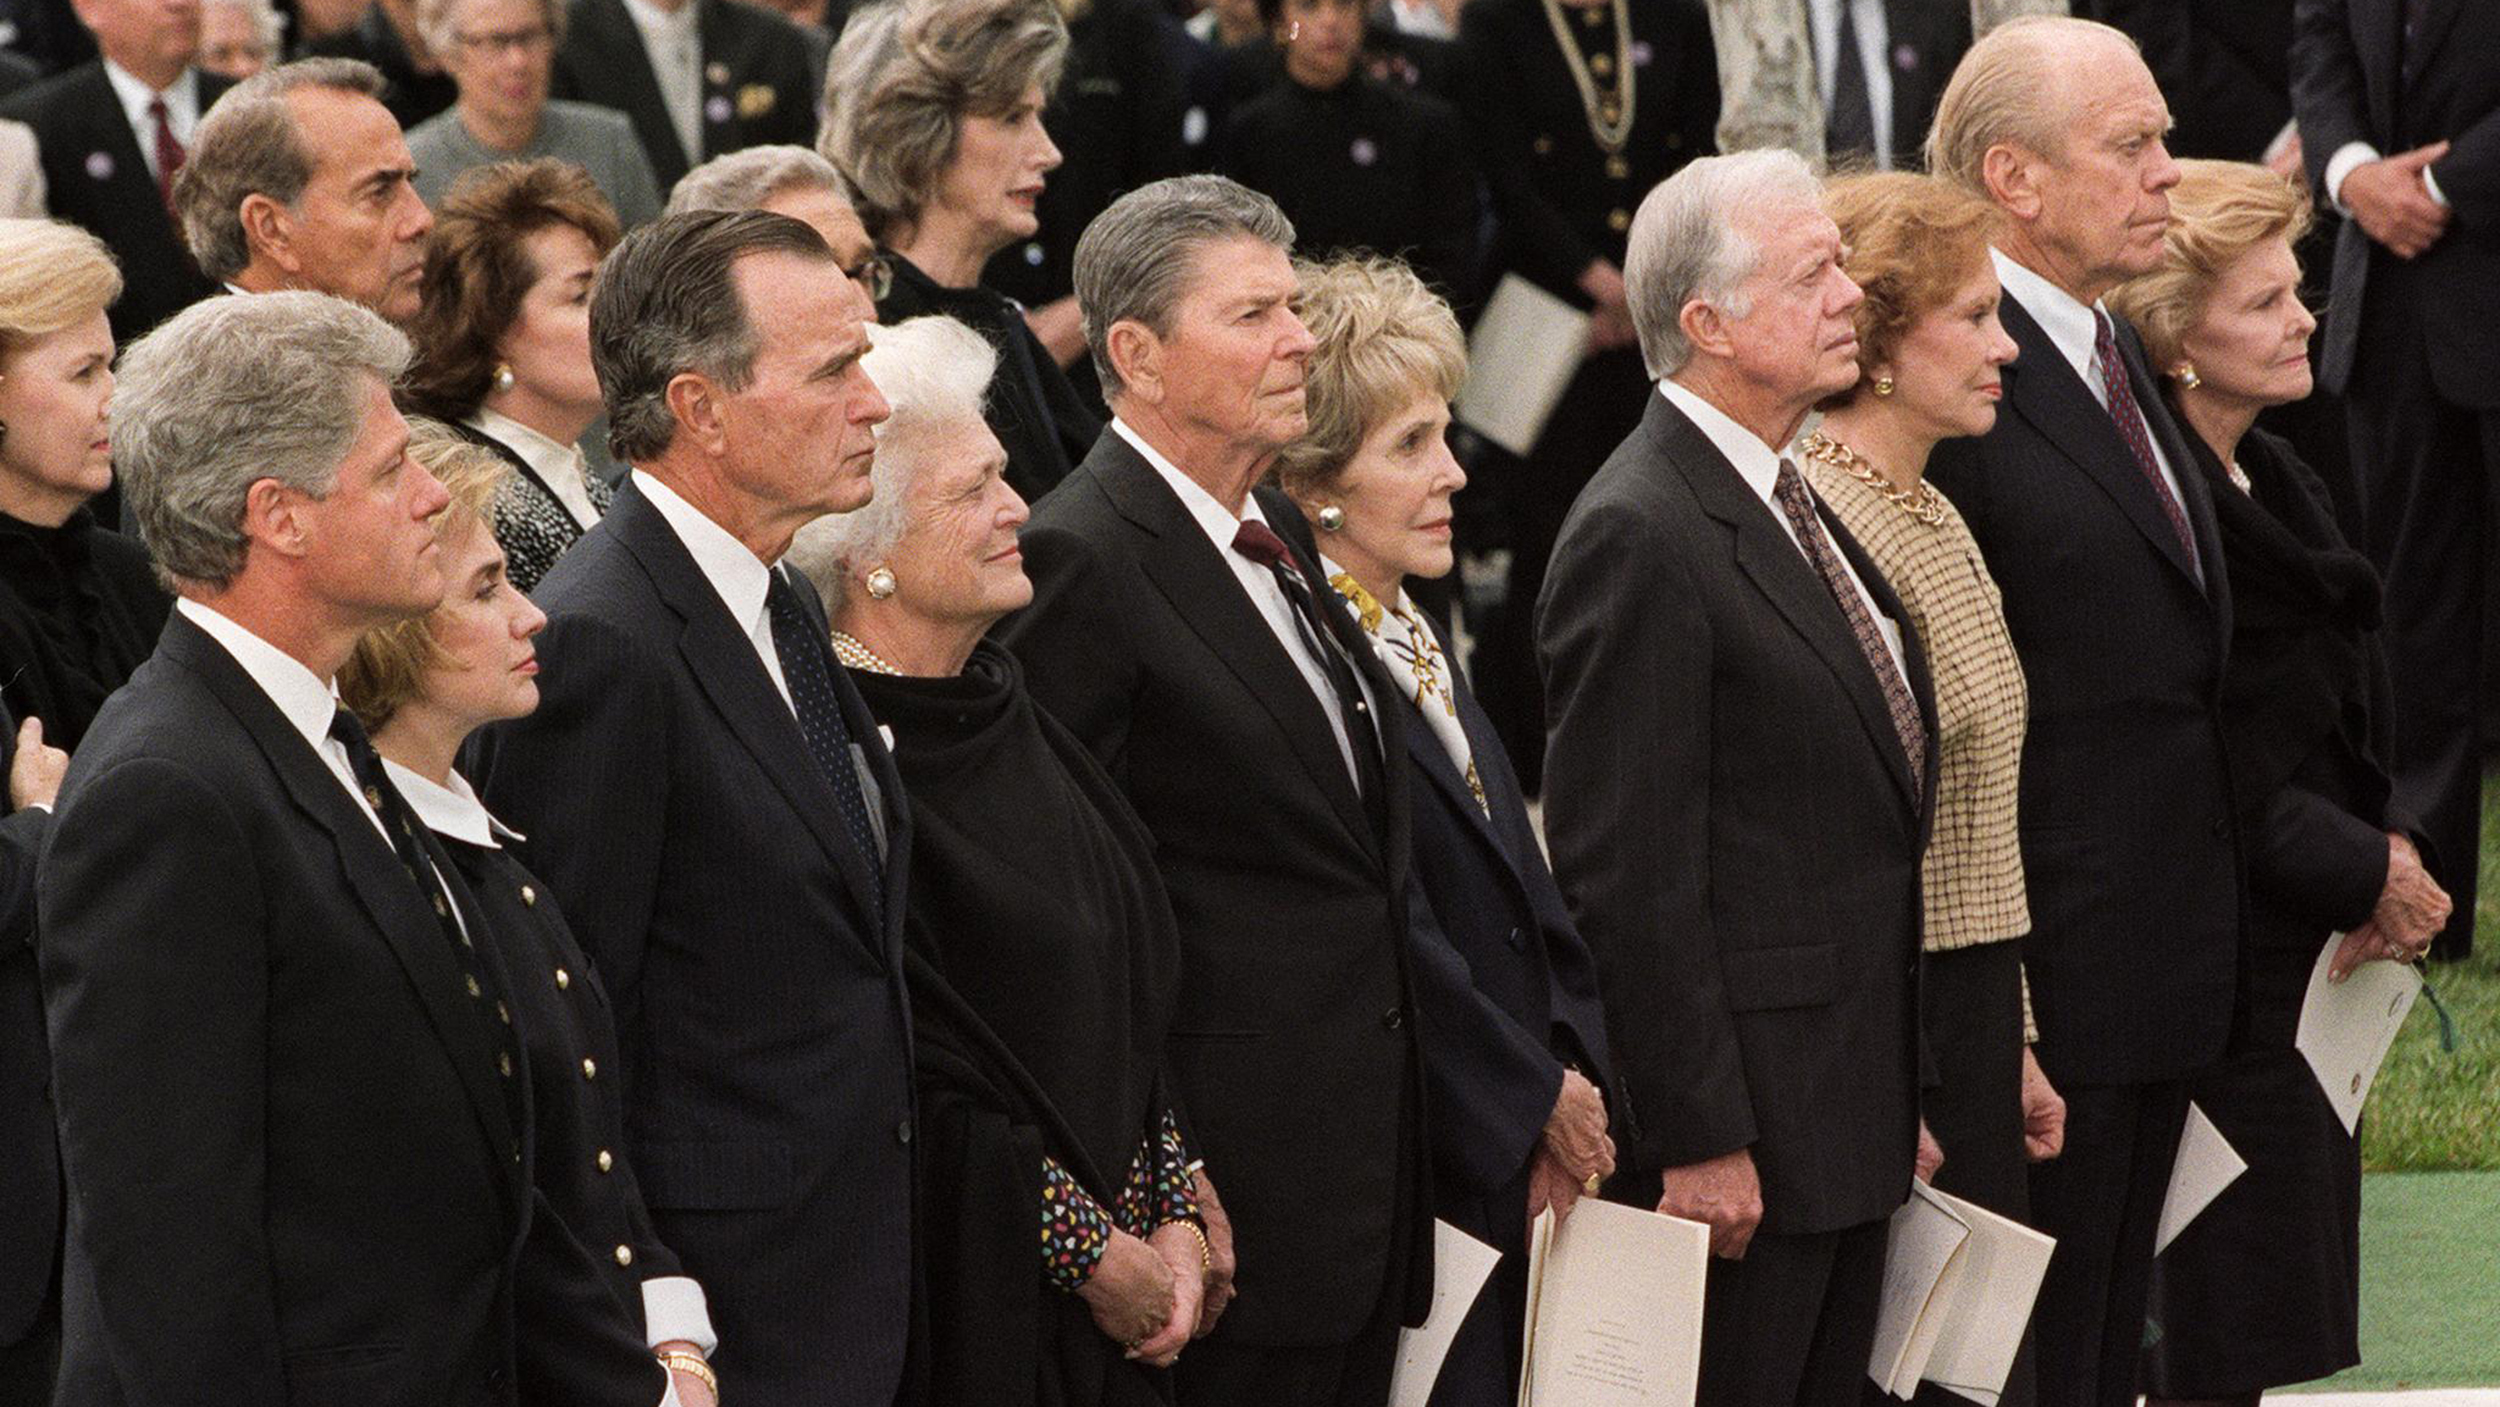 photo of former U.S. presidents at Richard Nixon's funeral